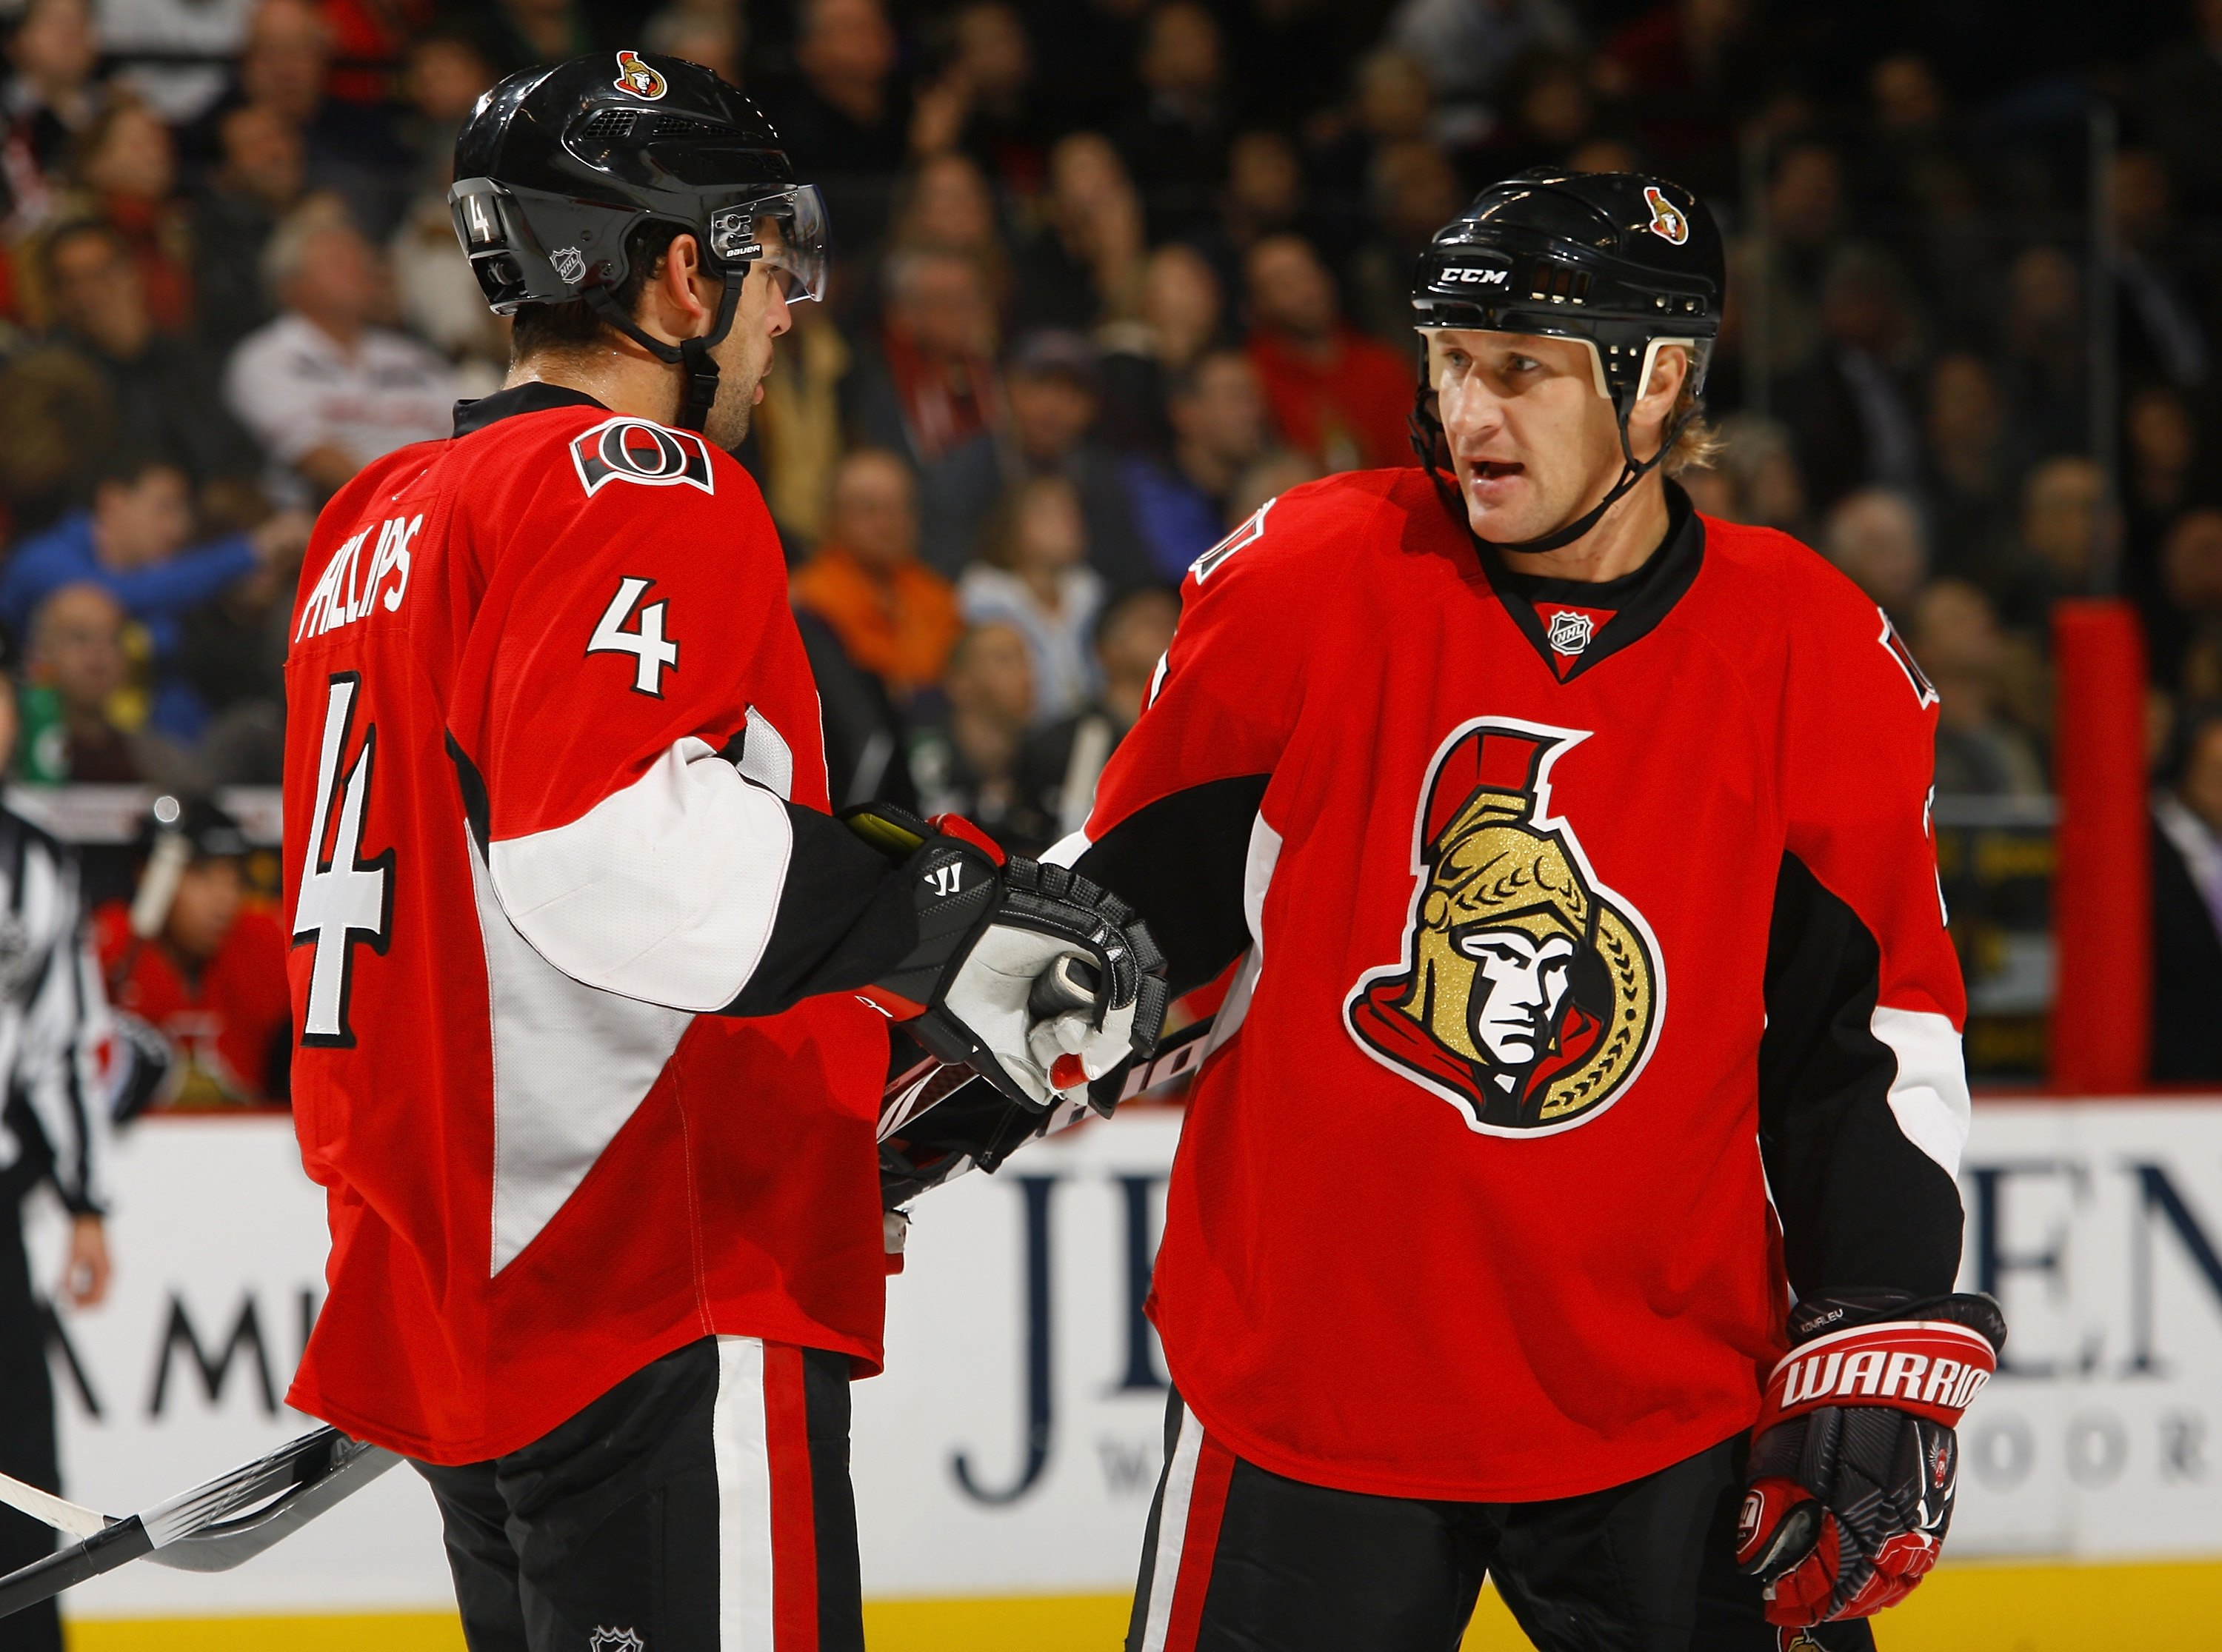 OTTAWA, ON - OCTOBER 15:  Chris Phillips#4 Alex Kovalev #27 of the Ottawa Senators talk on the ice against the Tampa Bay Lightning during a game at Scotiabank Place on October 15, 2009 in Ottawa, Canada.  The Ottawa Senators defeated the Tampa Bay Lightni